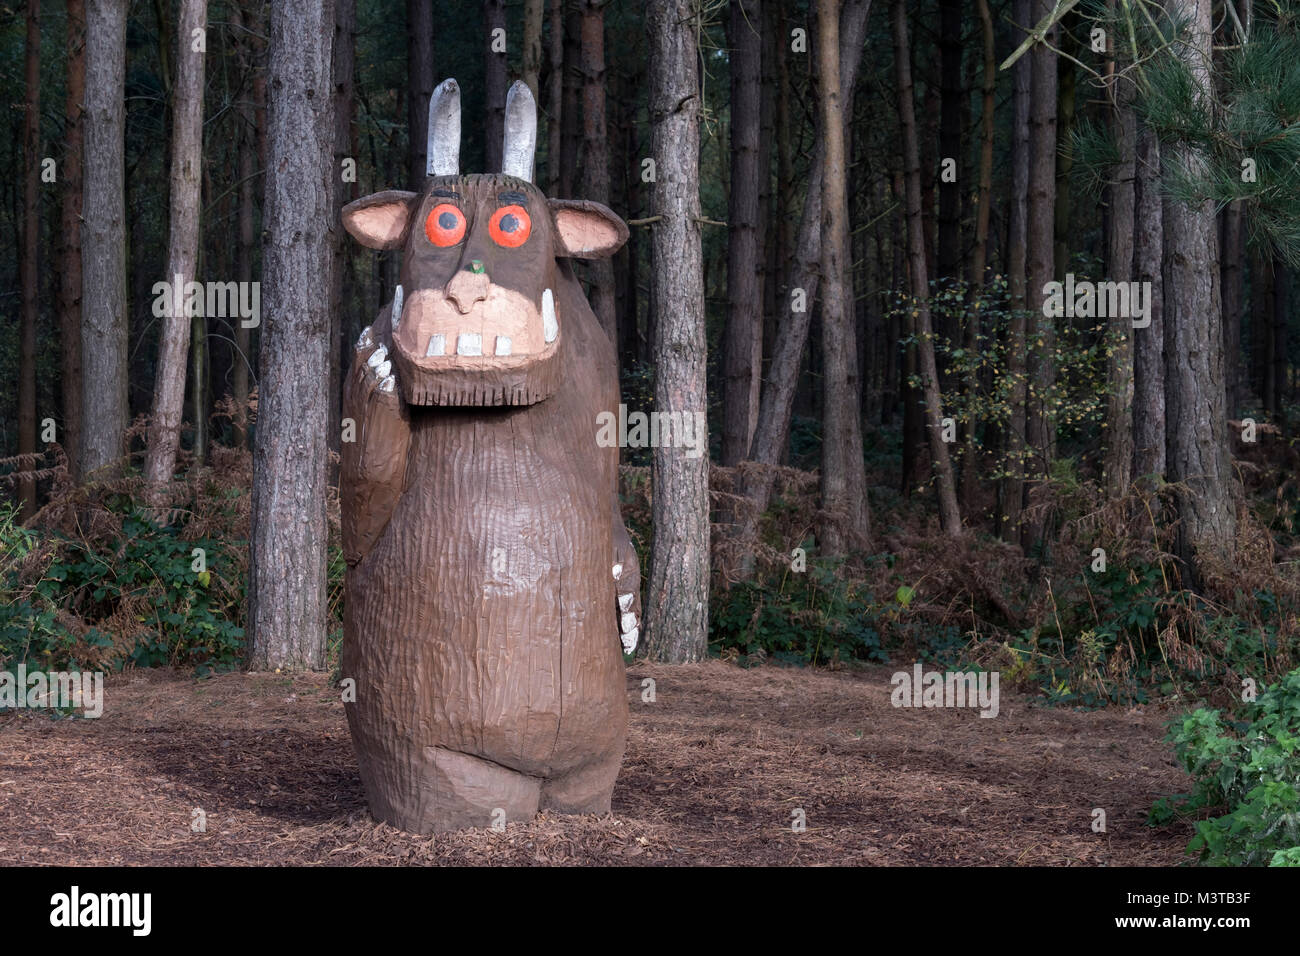 The Gruffalo Wood Carving on the Gruffalo Spotters Trail, Delamere Forest, Delamere, Cheshire, England, UK - Stock Image